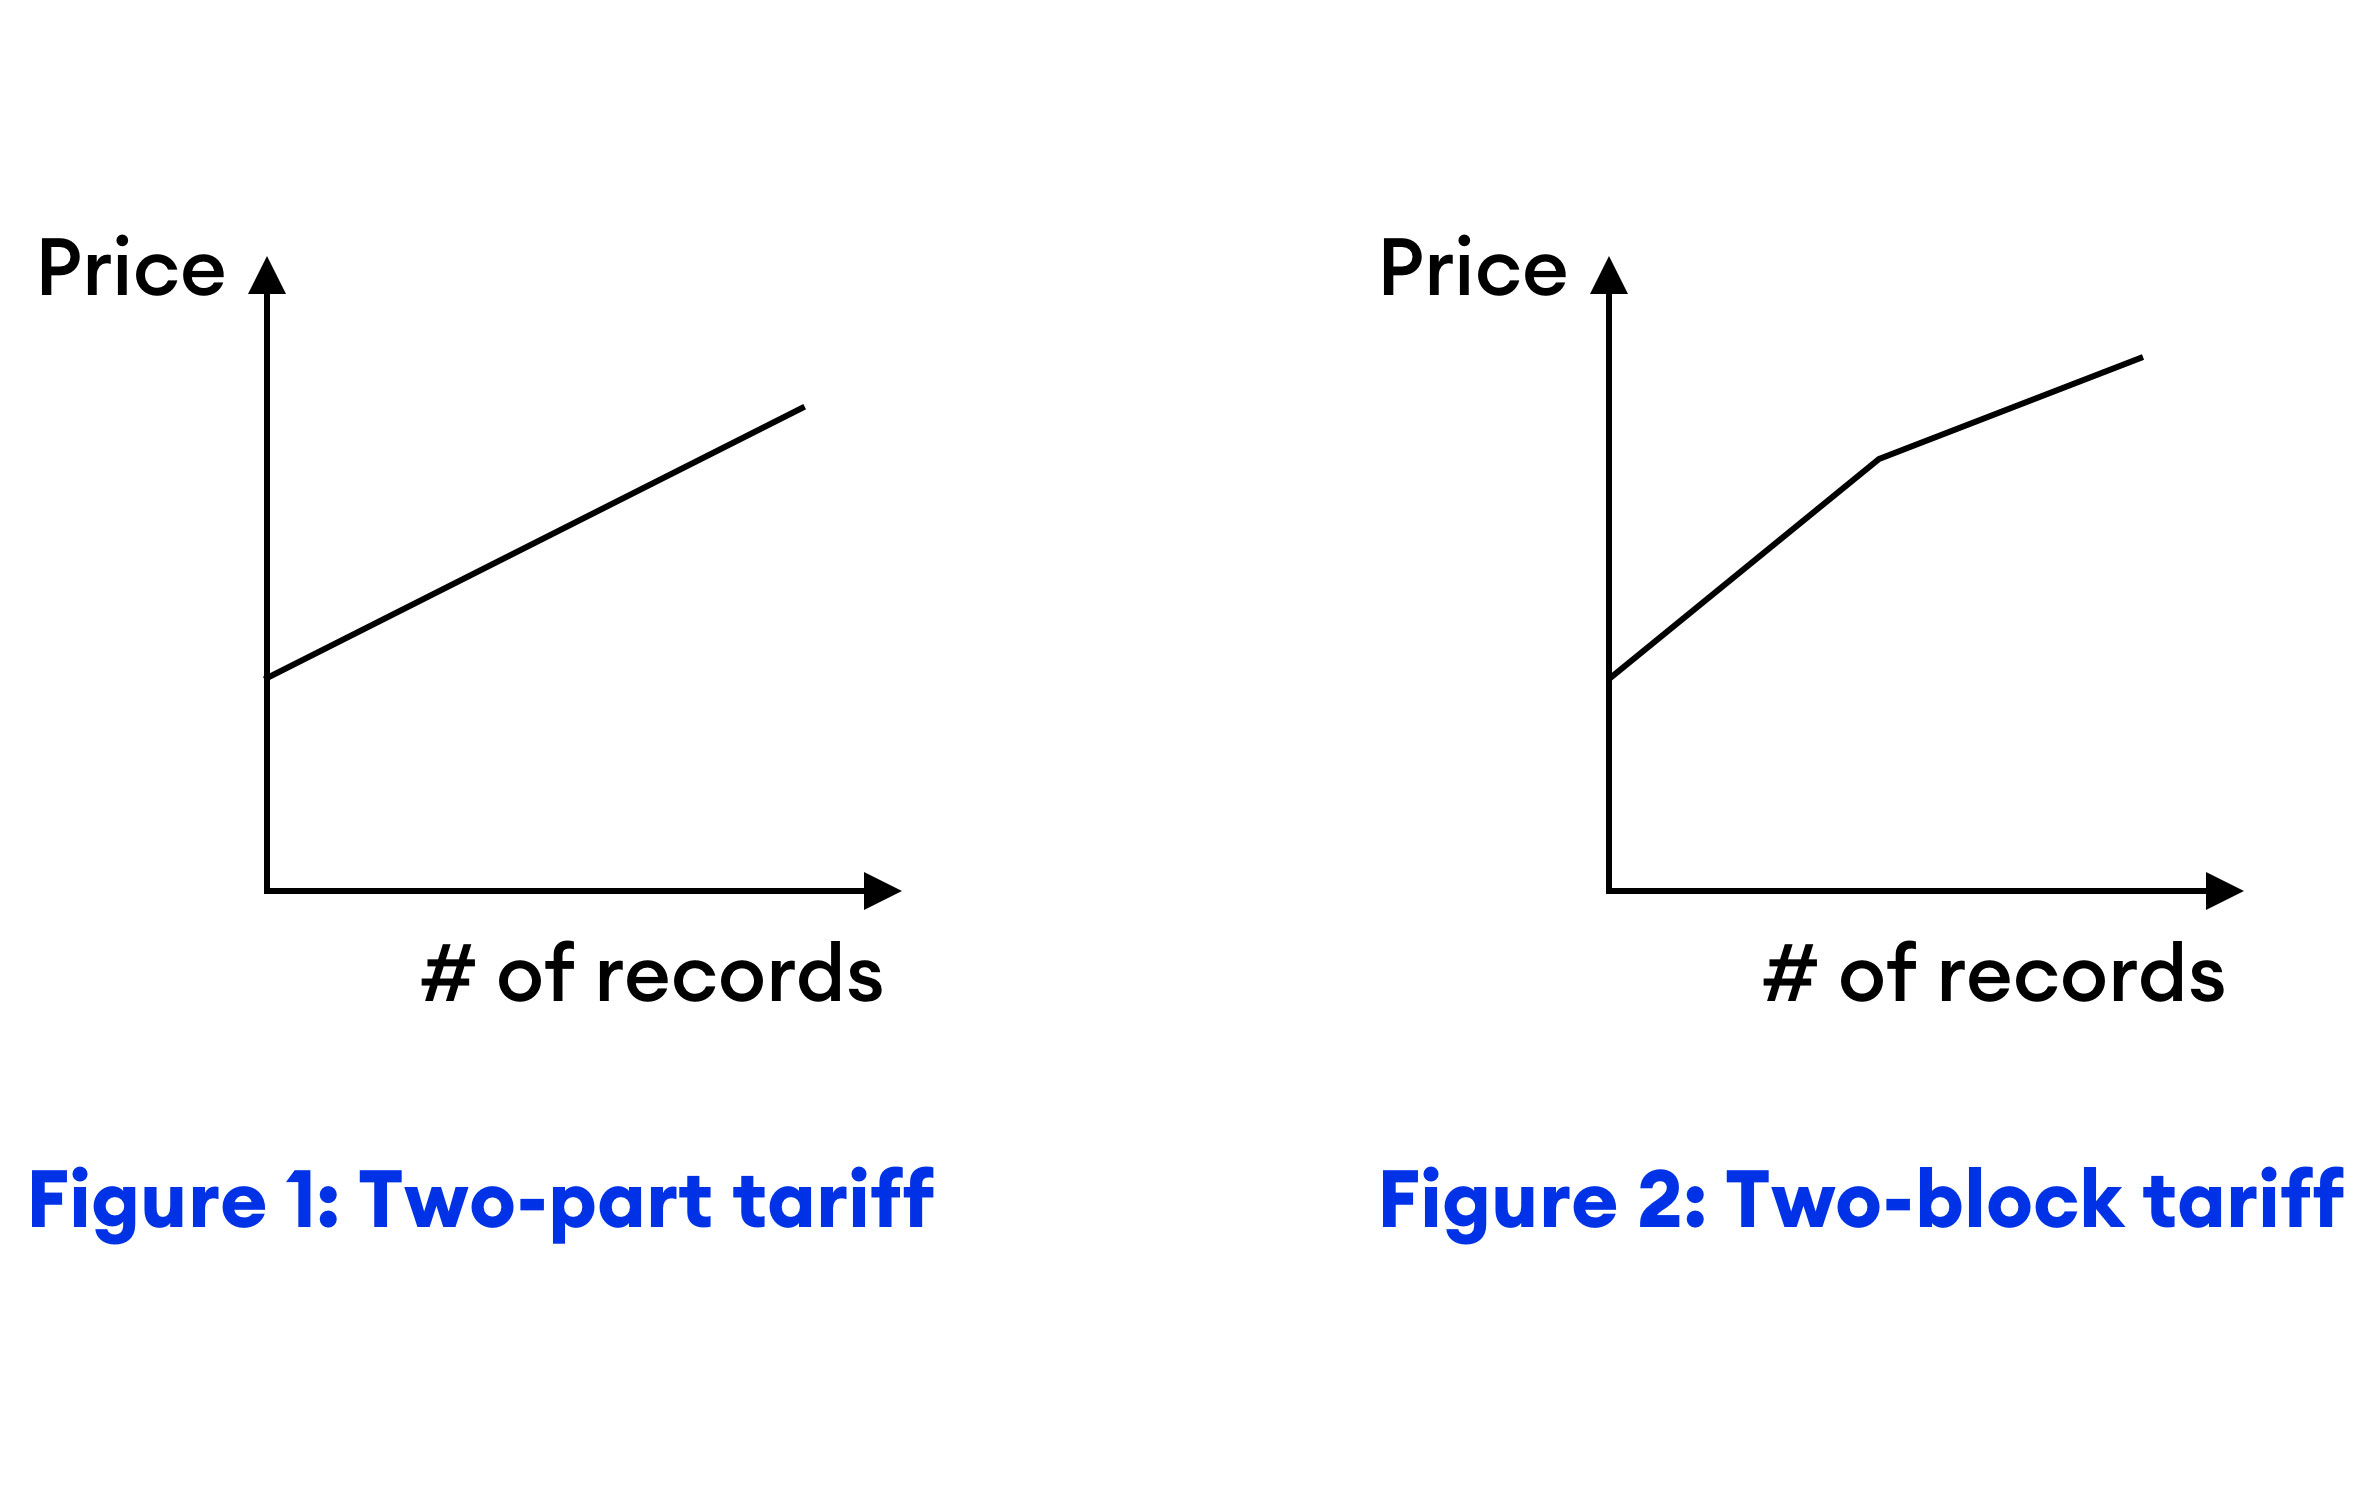 BLOG-031819-pricing-policies-graphs